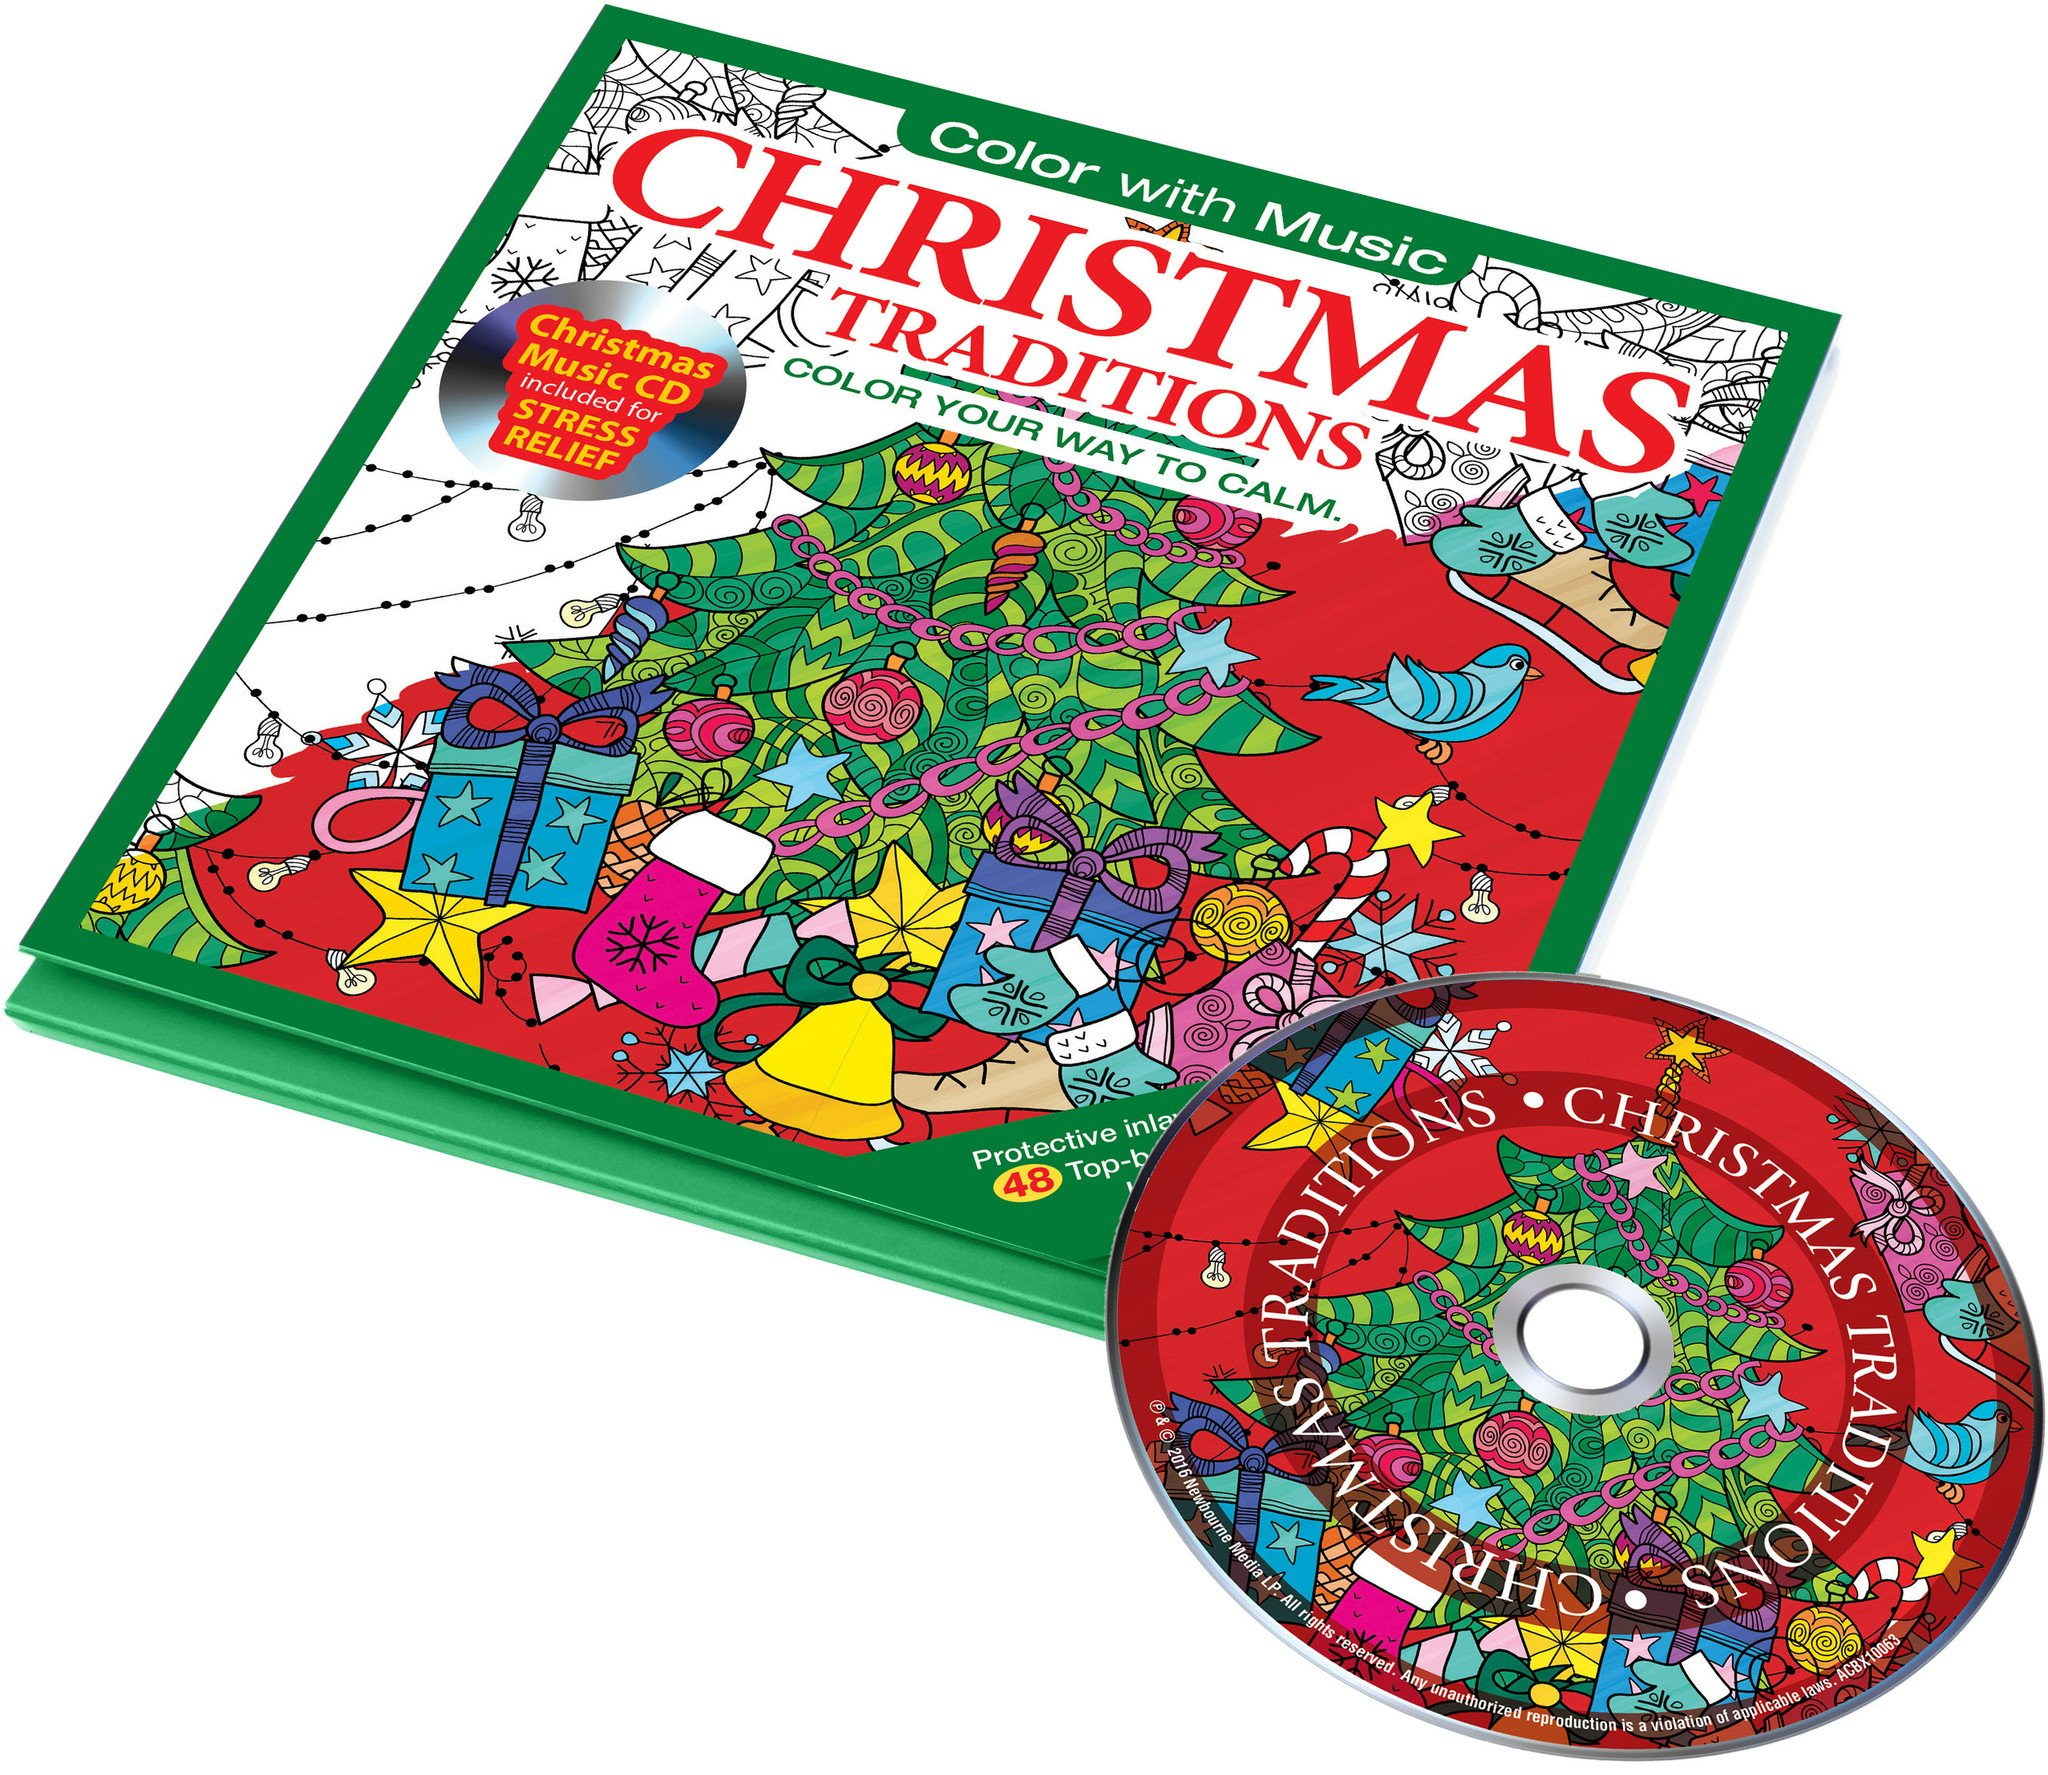 29268 - Christmas Traditions Adult Coloring Pages with Music CD USA